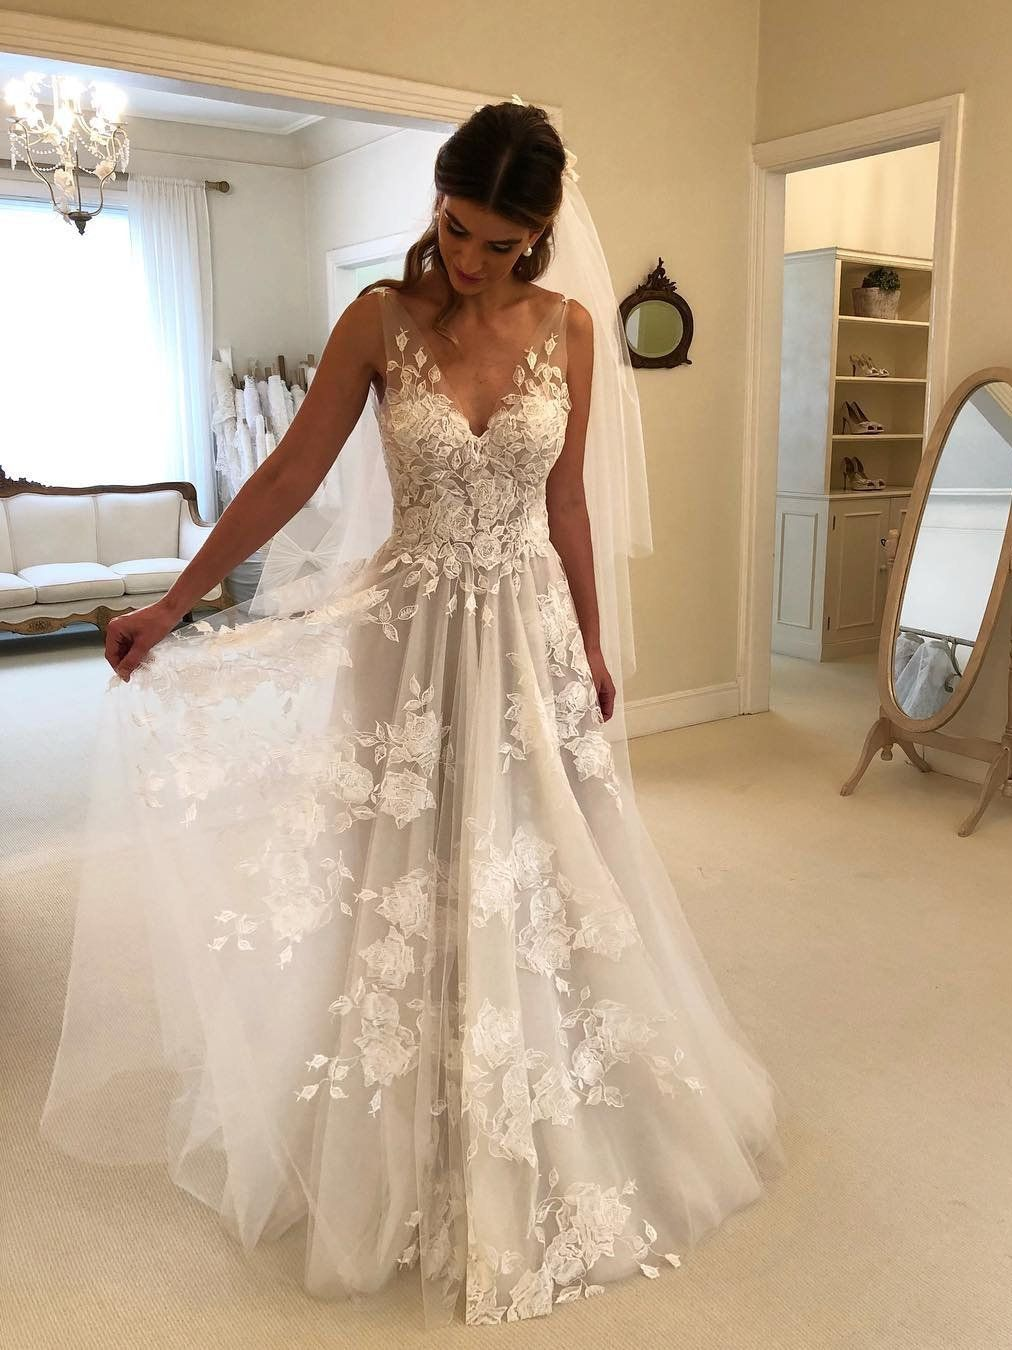 good texture later free shipping Lace Applique Ivory Beach Wedding Dresses V Neck Backless ...